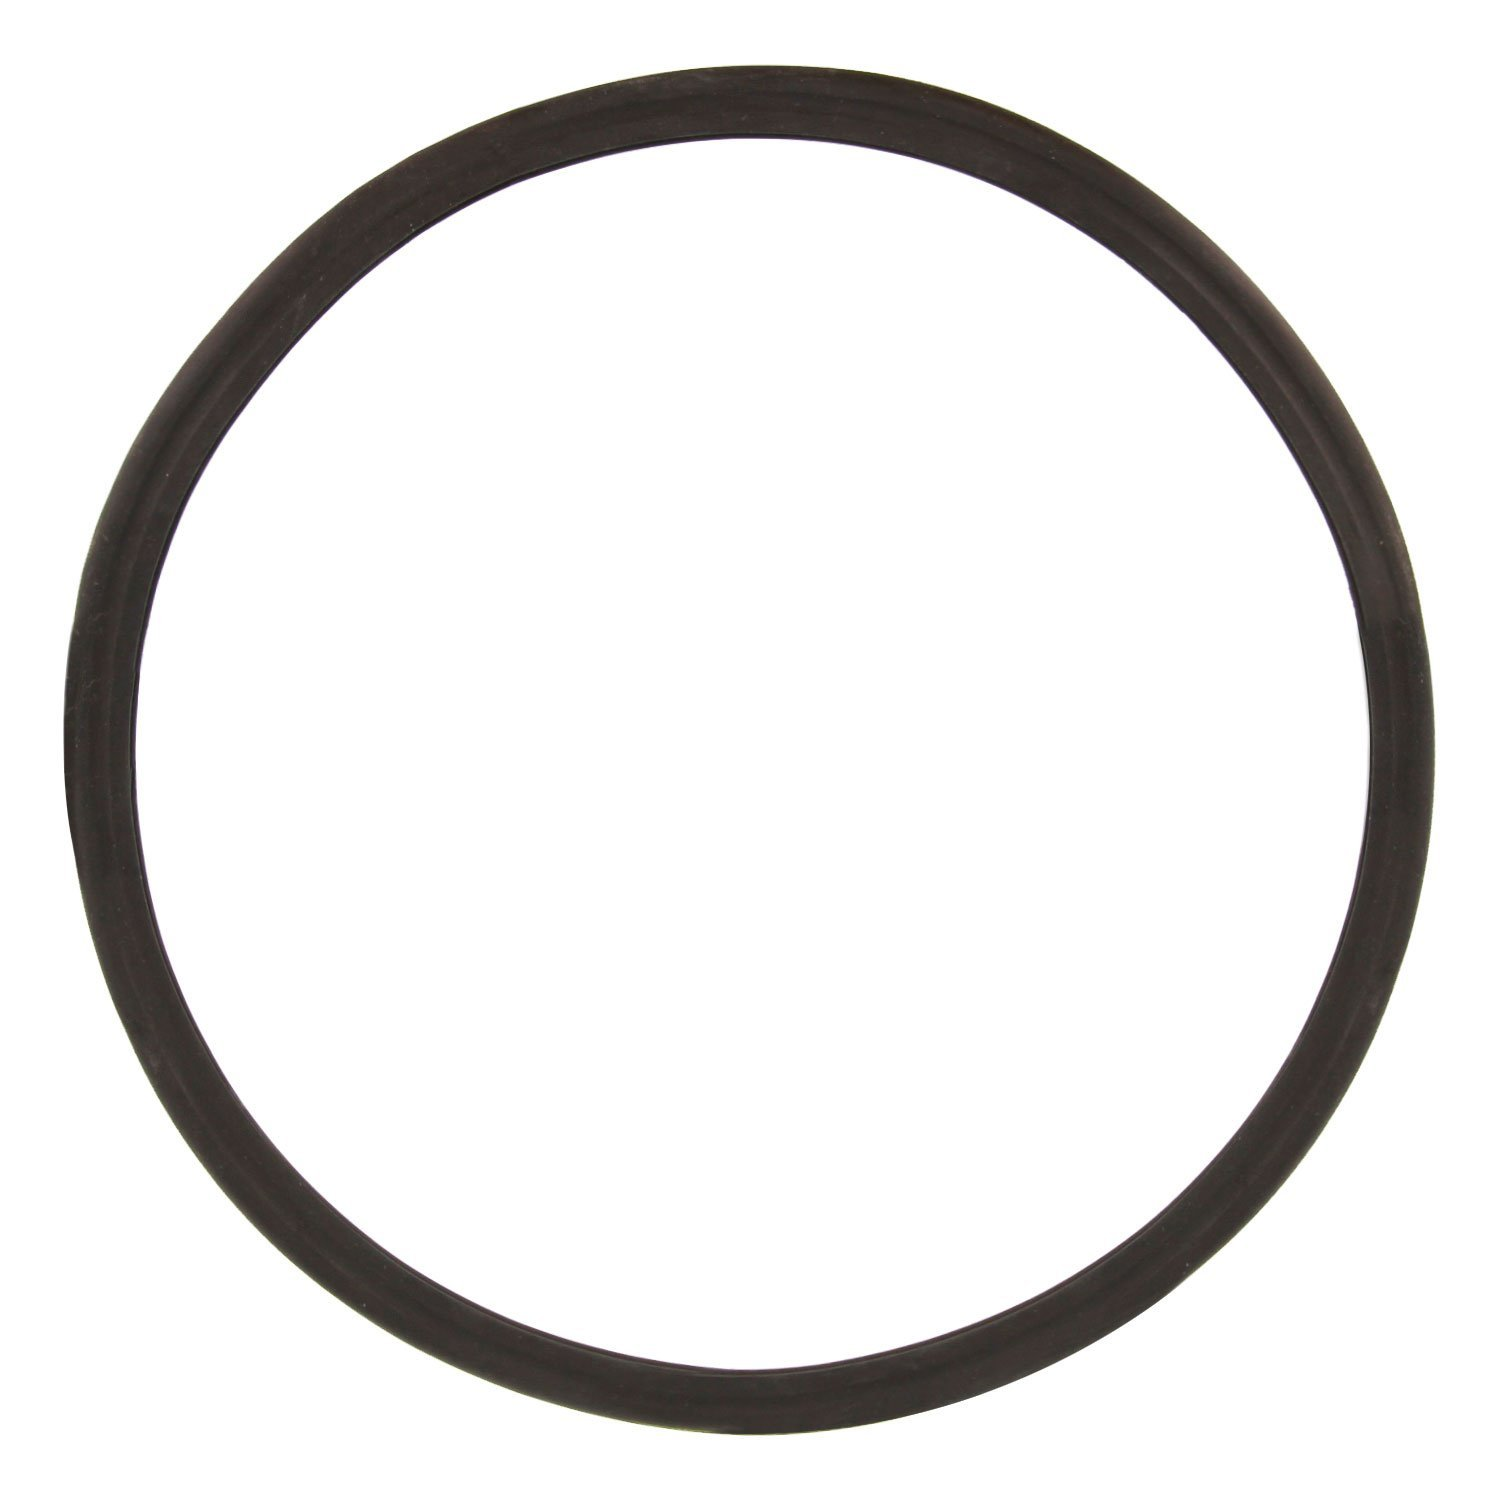 Paint Pressure Pot Tank Lid Replacement Rubber Gasket for 2.5 to 2.8 Gallon (10 Liter) Paint Pressure Tanks TCP Global PTG10